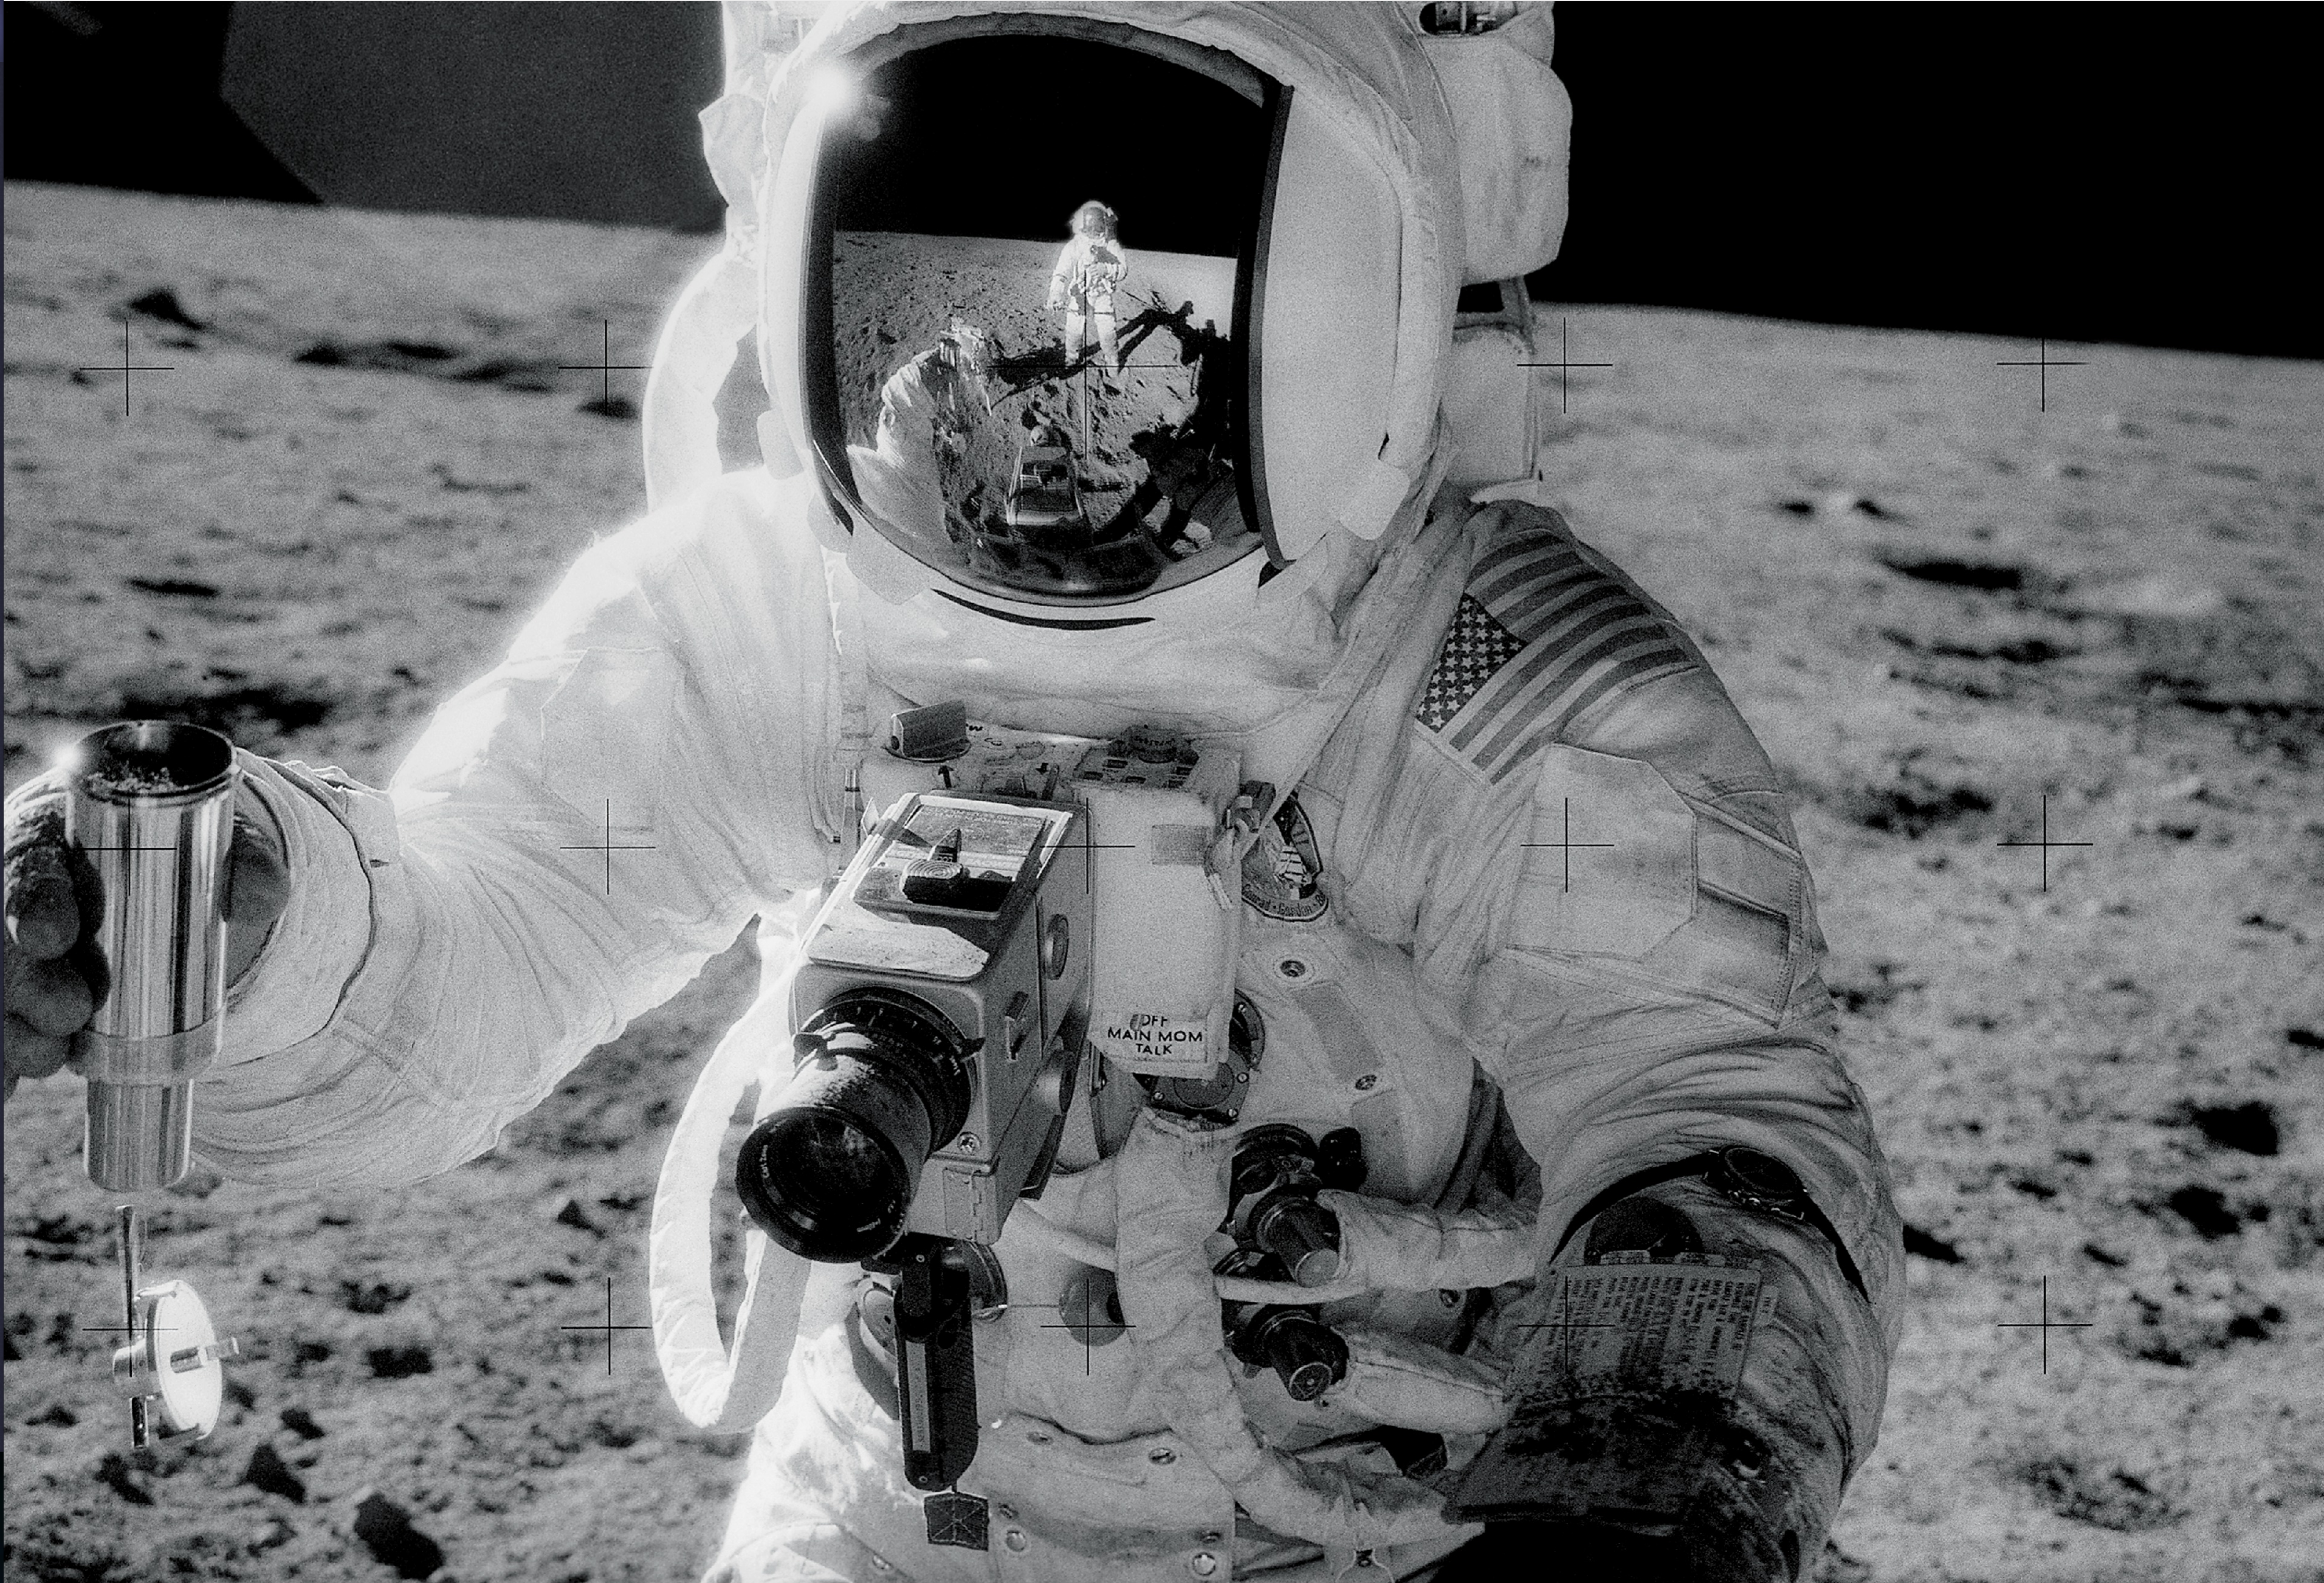 The Omega Speedmaster of Alan Bean from the Apollo 12 mission